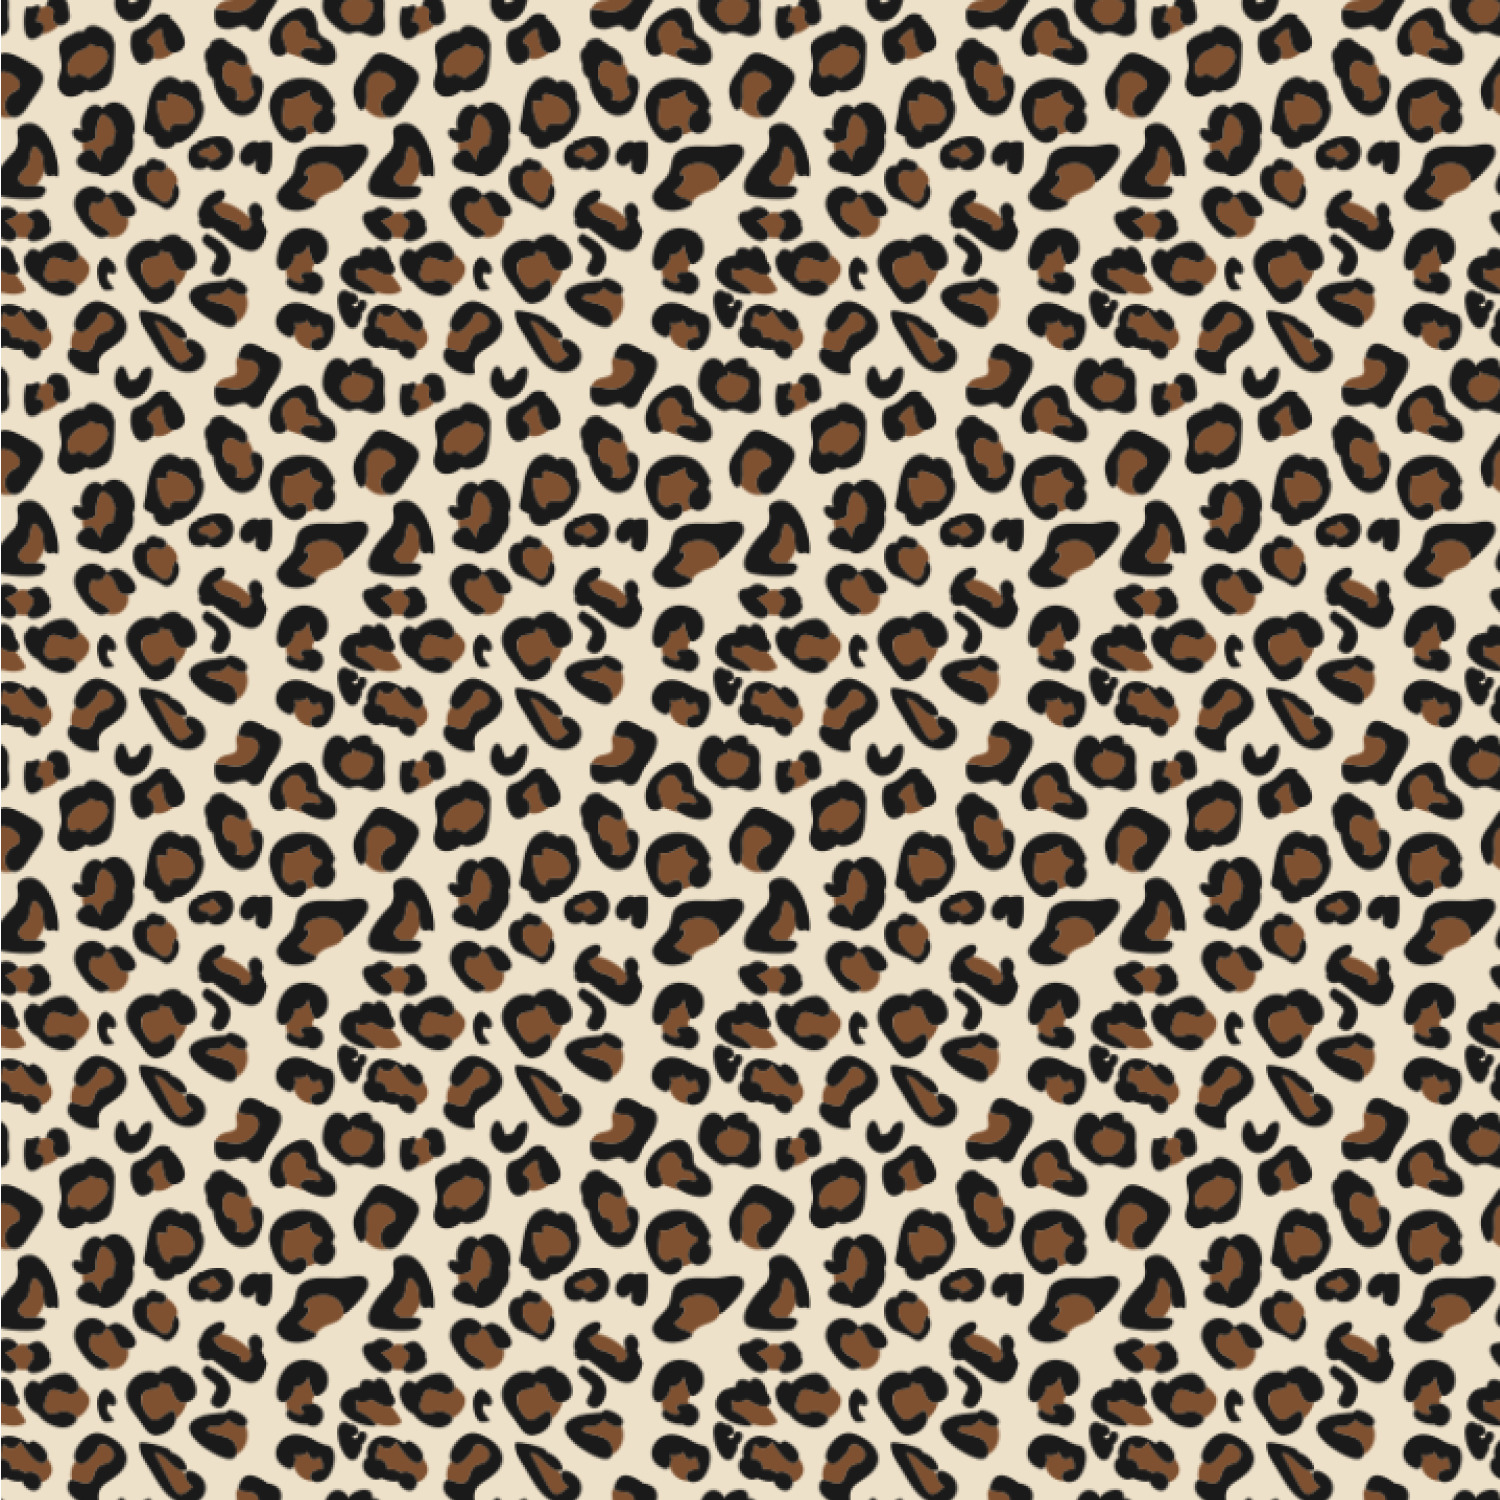 Leopard Print Wallpaper & Surface Covering - YouCustomizeIt